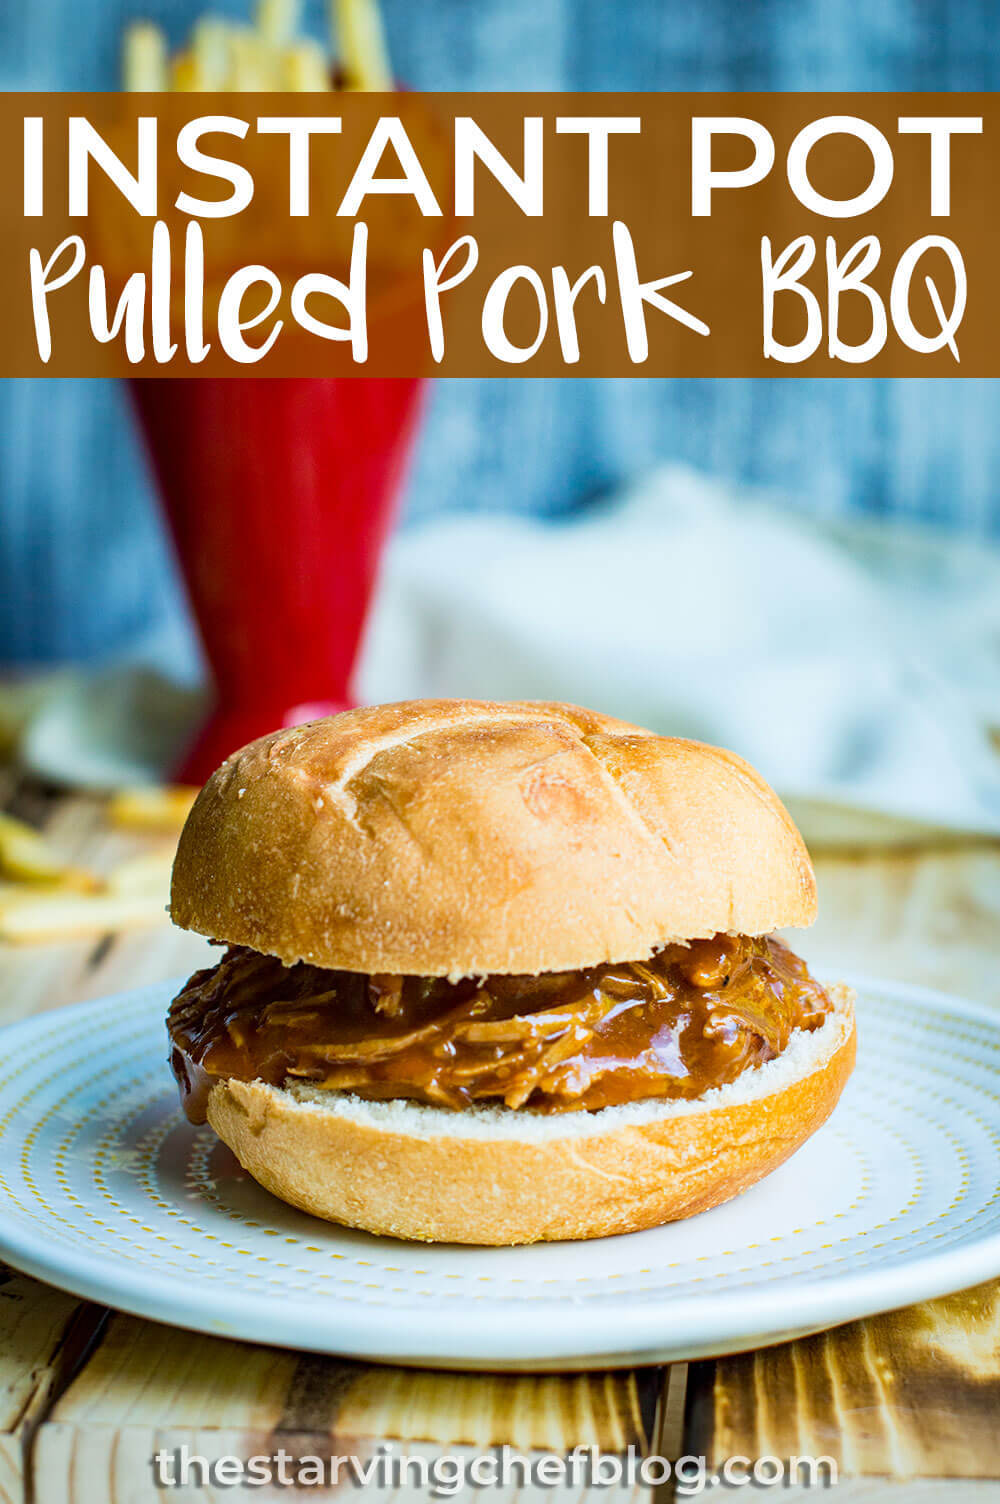 Instant Pot Pulled Pork Apple Cider BBQ